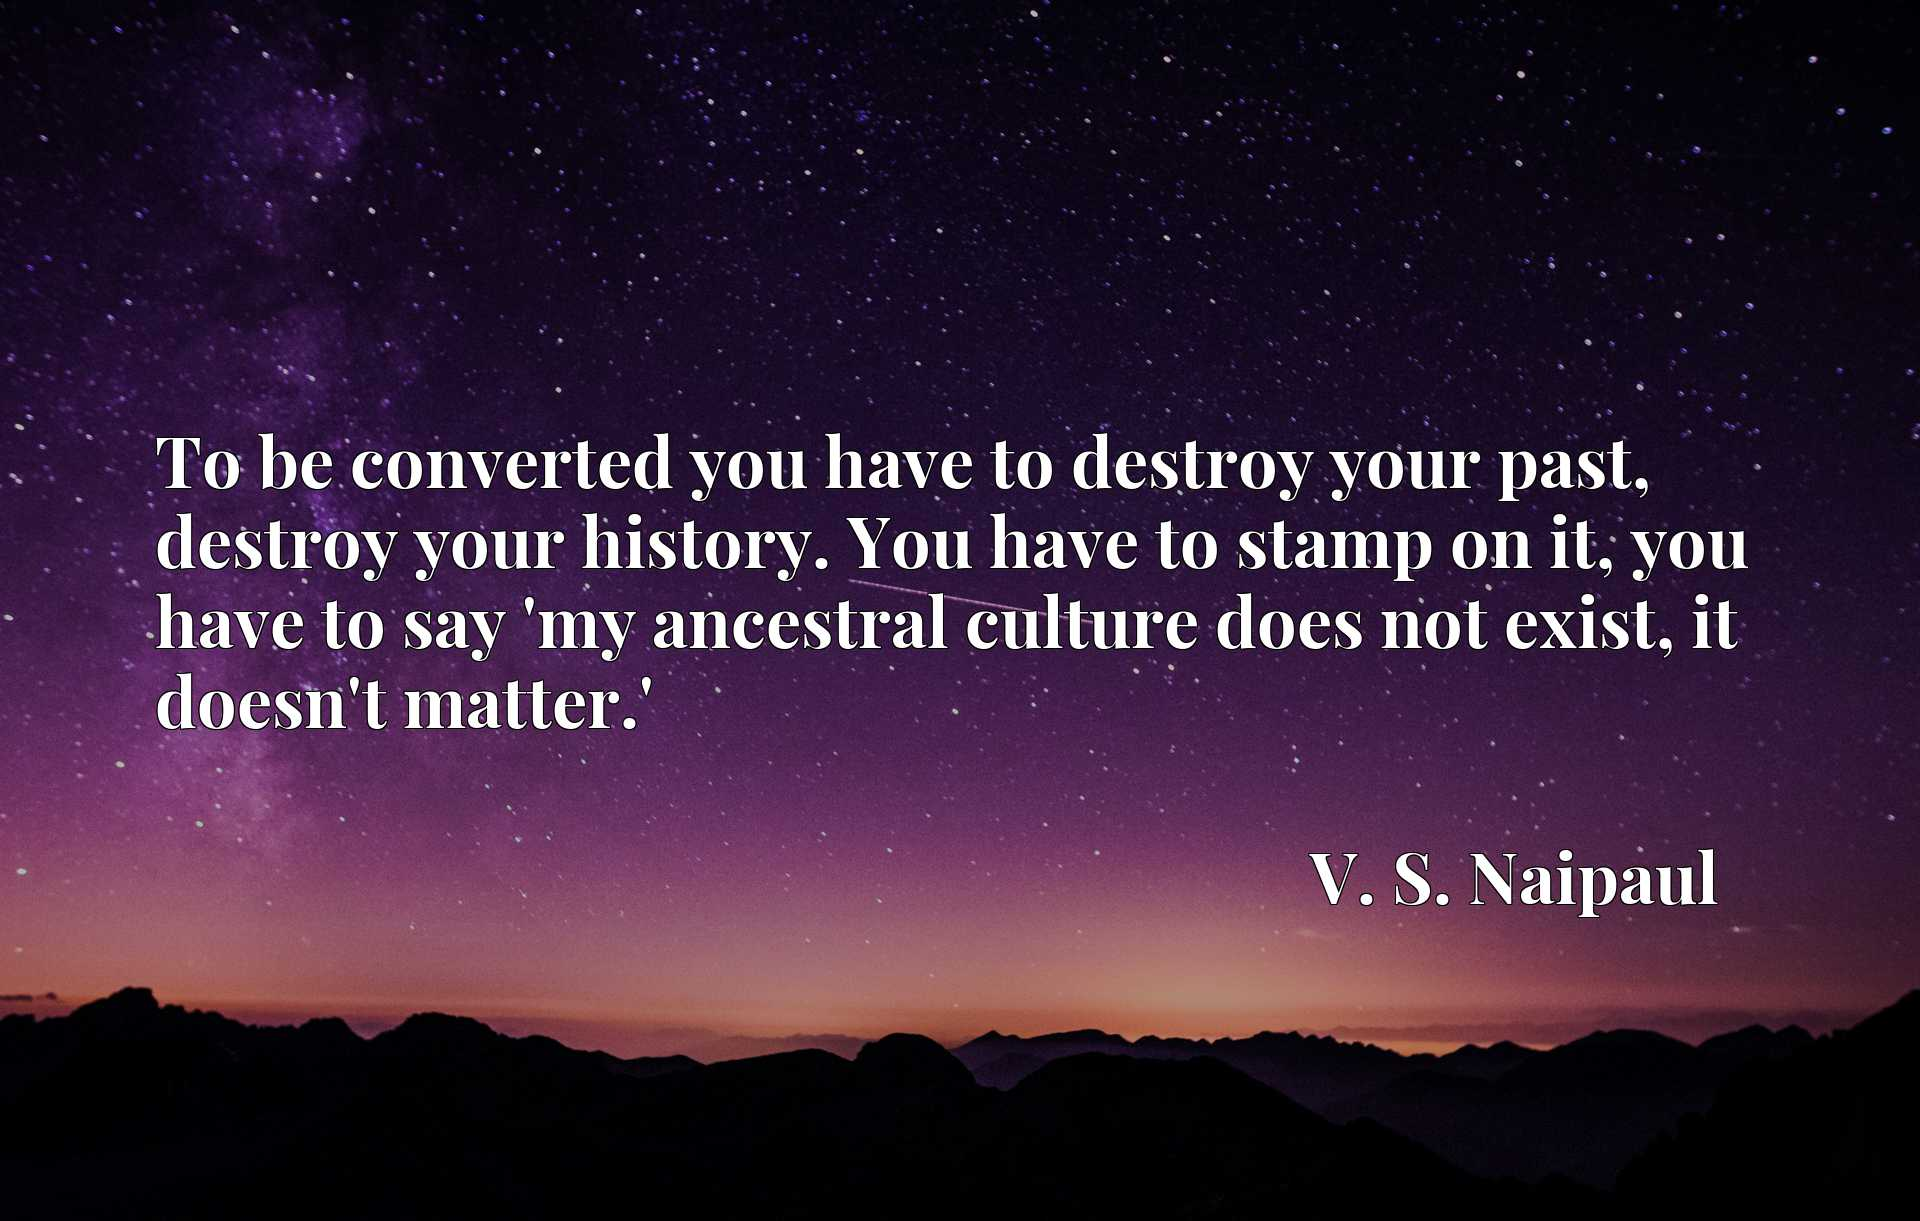 To be converted you have to destroy your past, destroy your history. You have to stamp on it, you have to say 'my ancestral culture does not exist, it doesn't matter.'